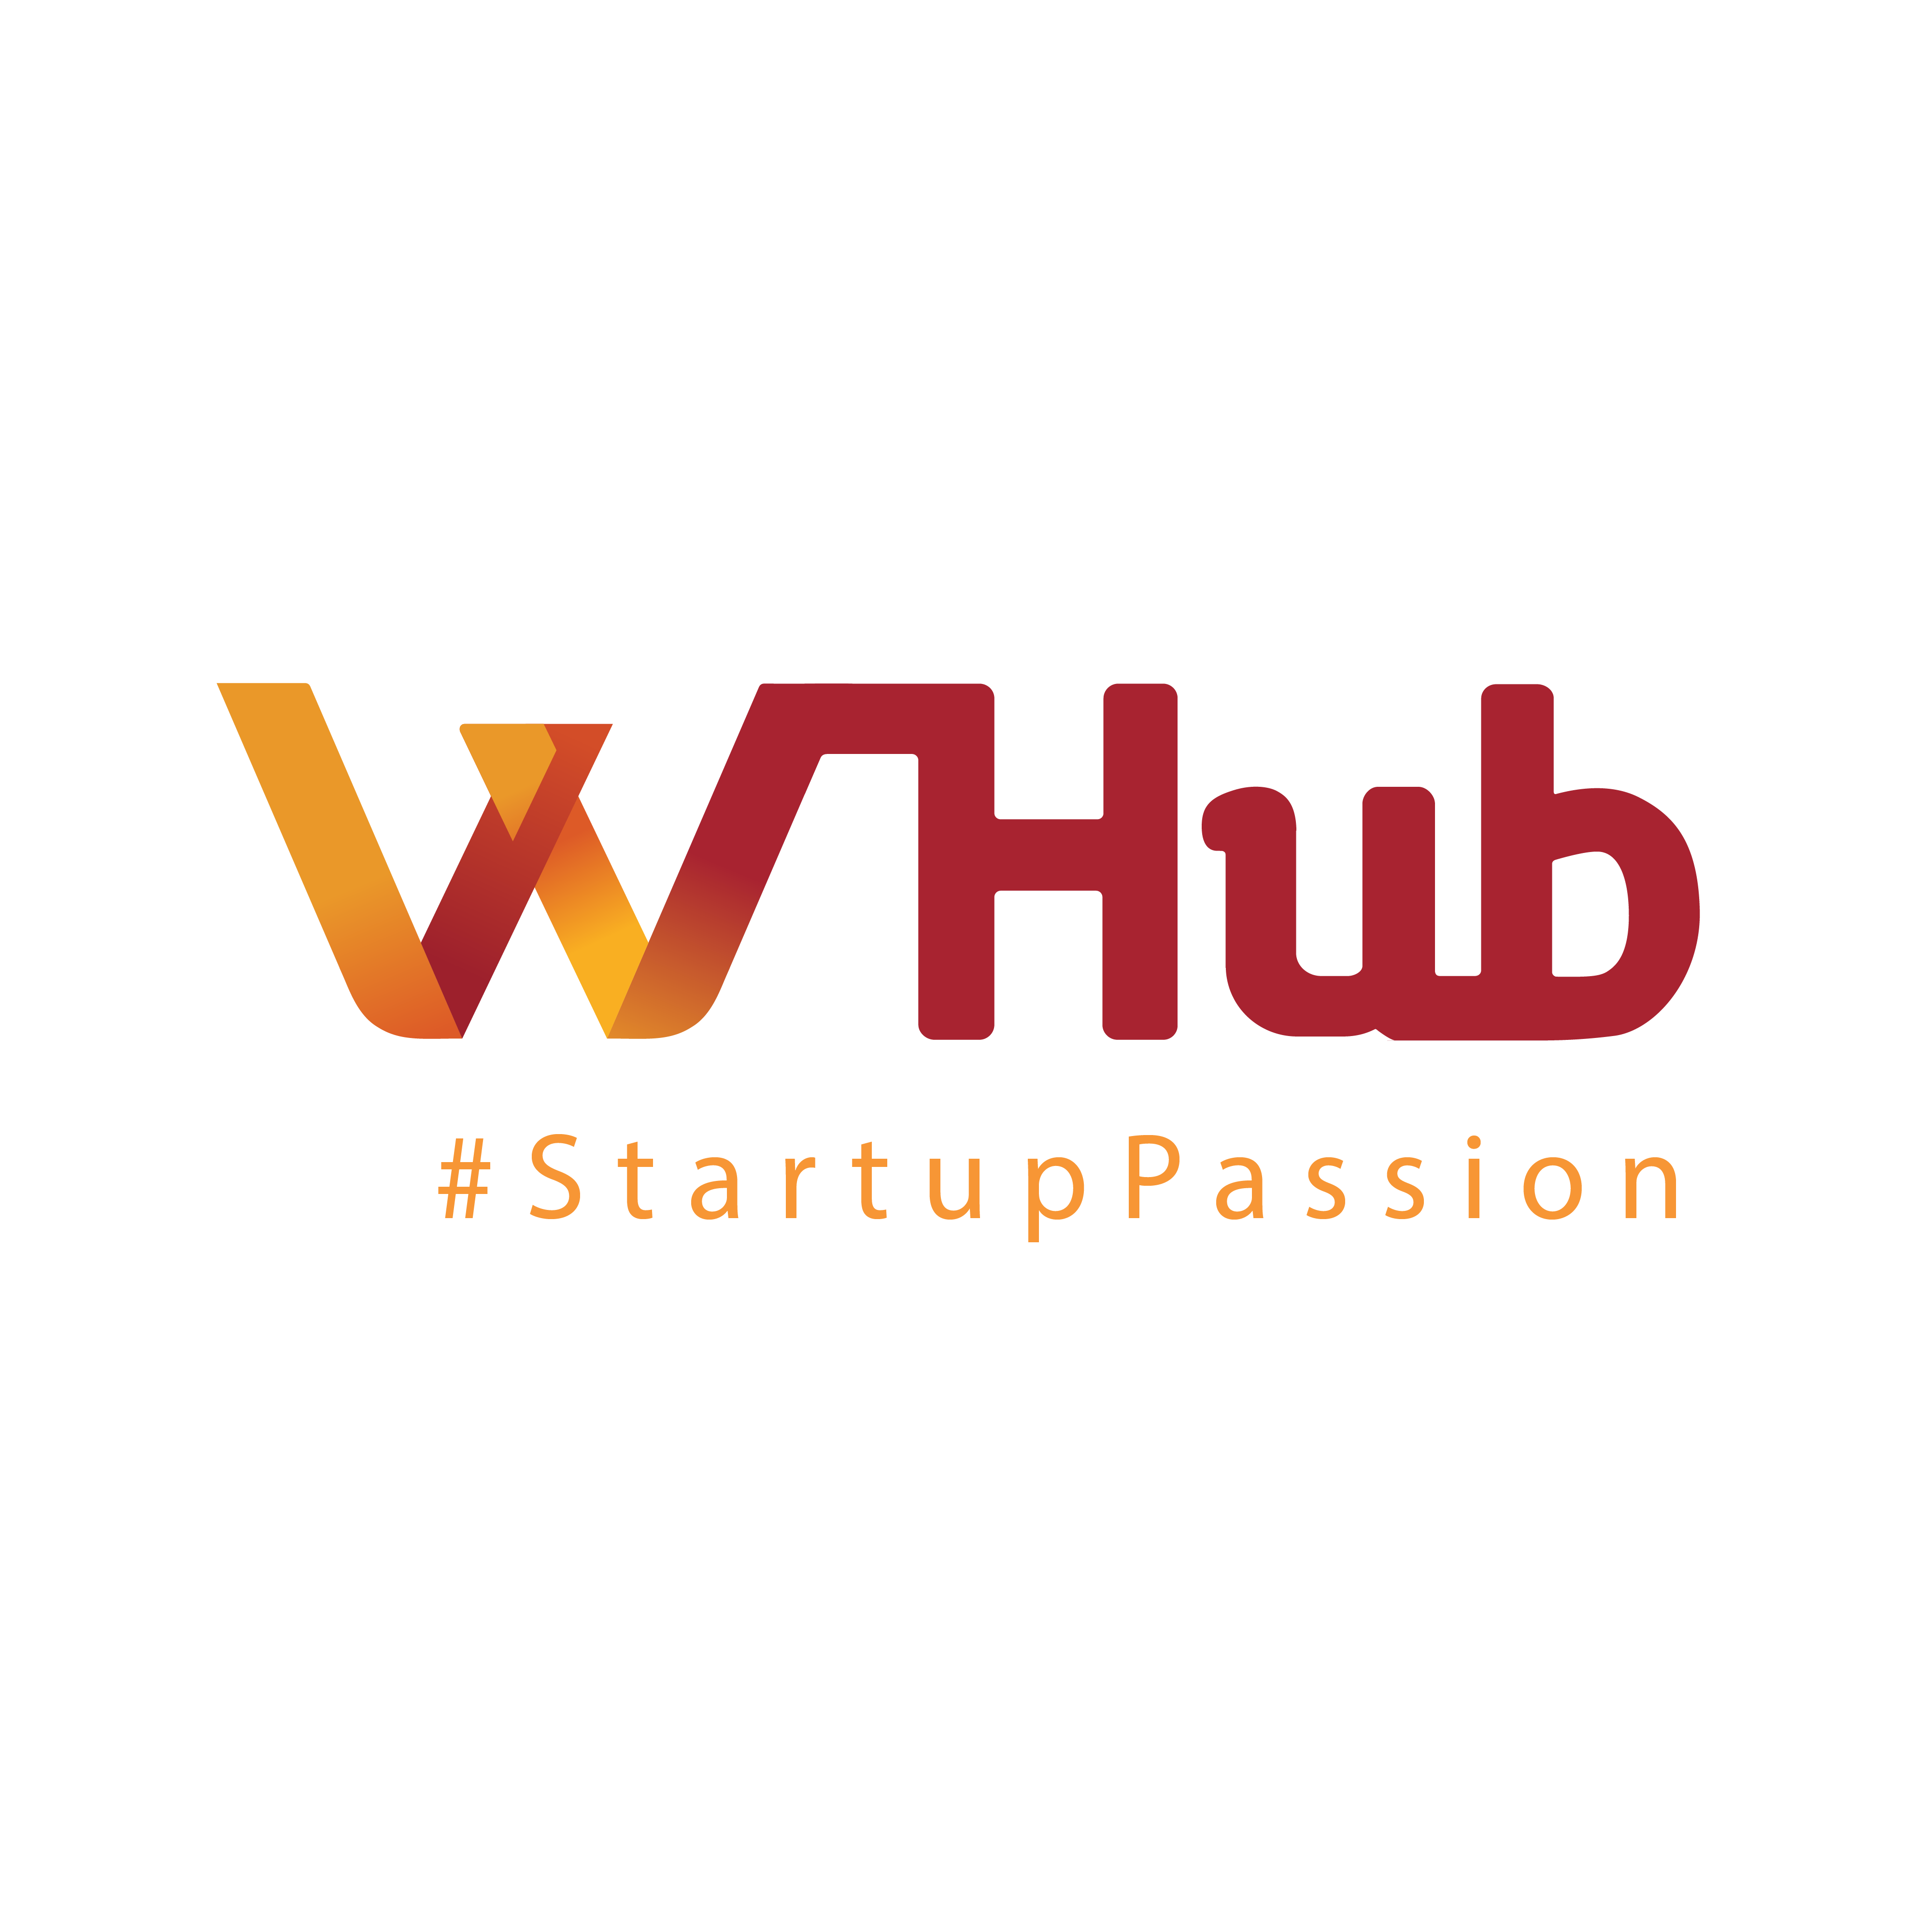 Whub logo colour